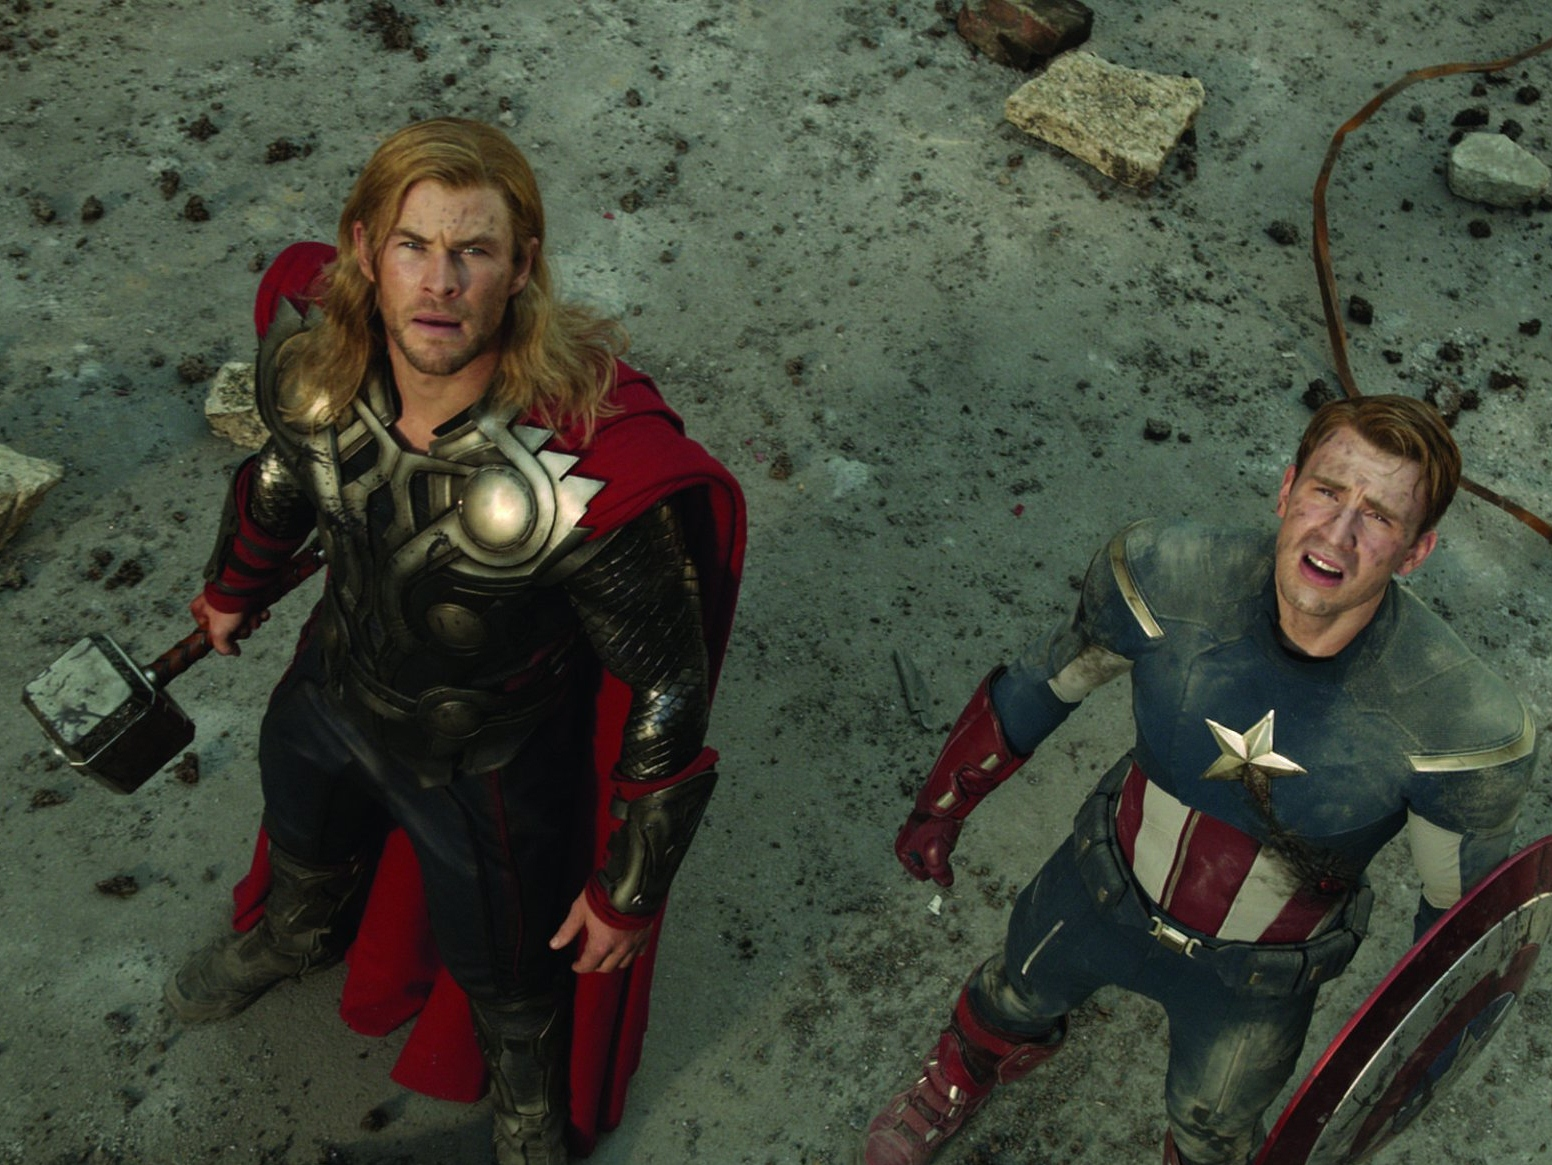 'The Avengers' Already Looking Super